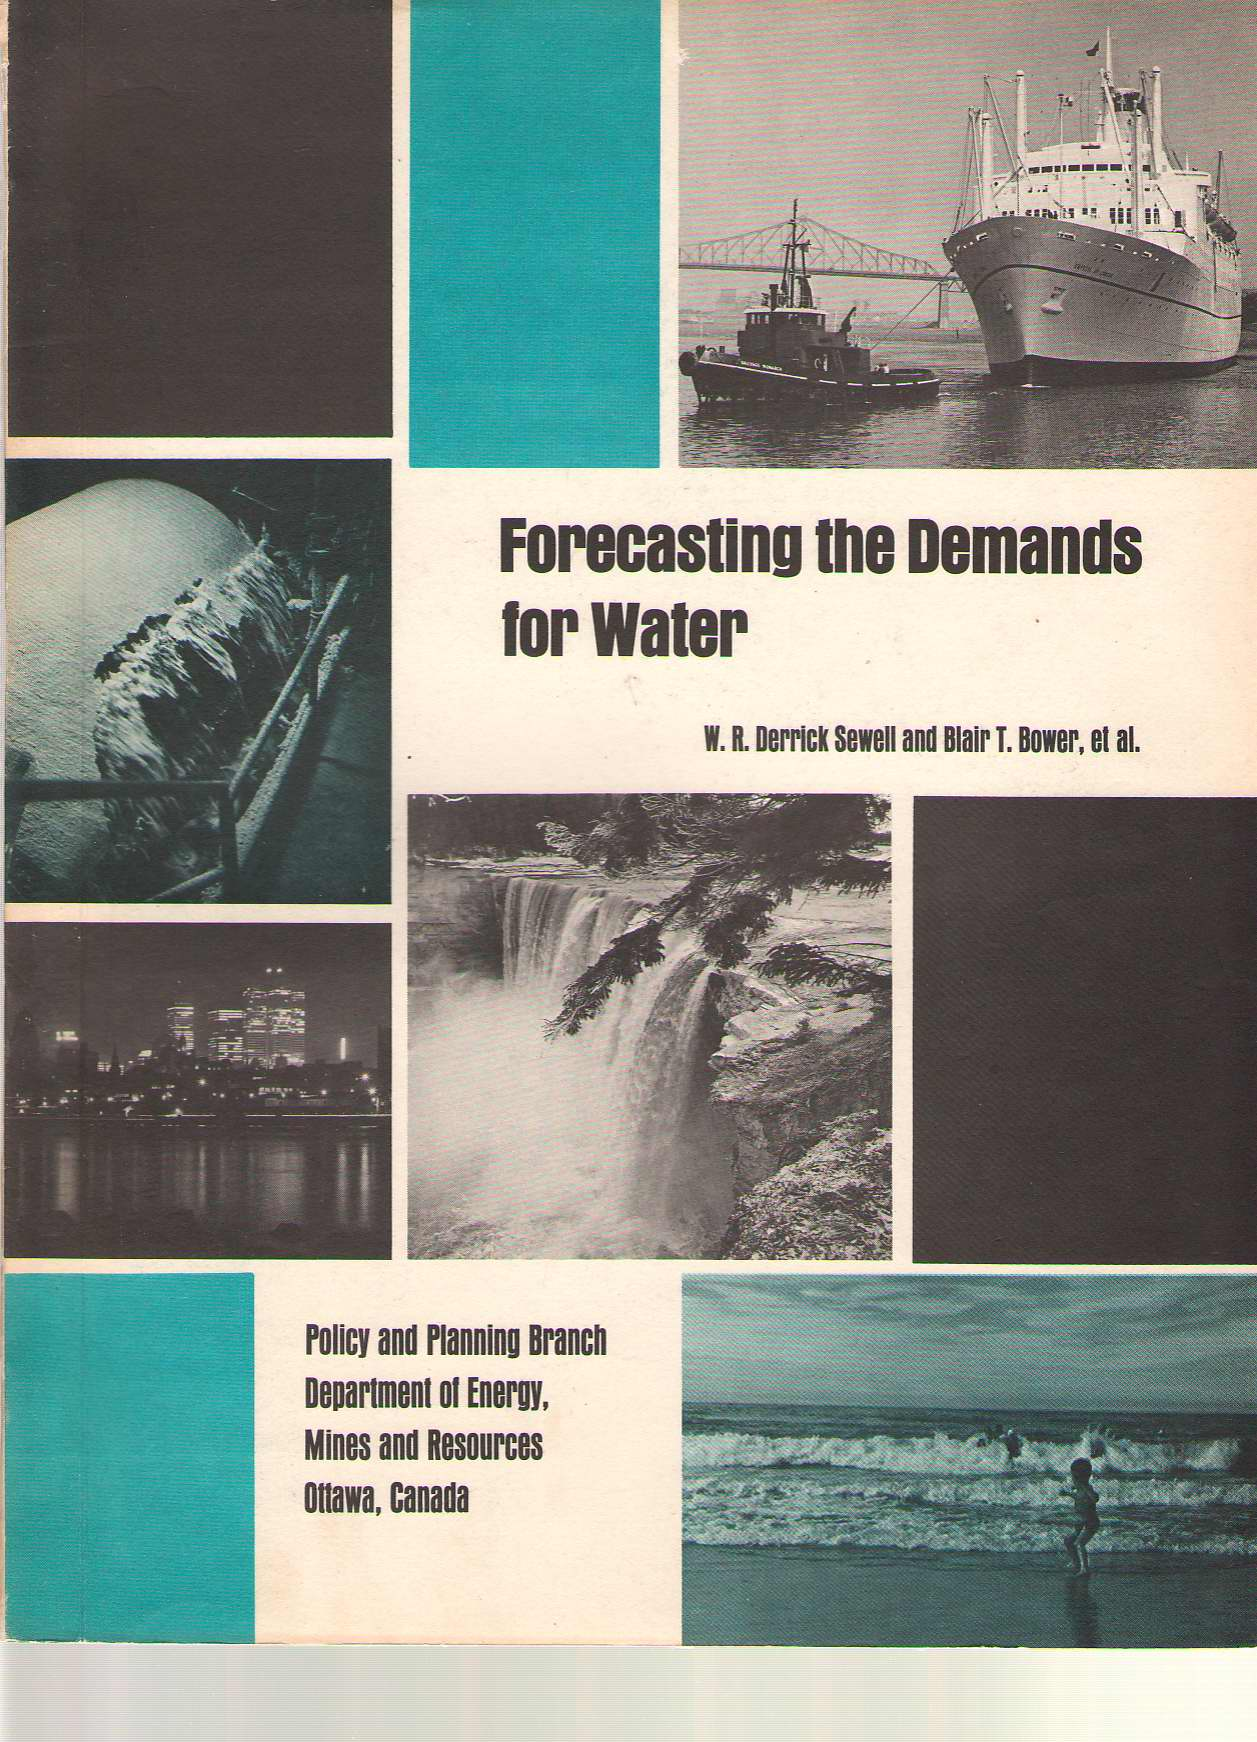 Forecasting The Demands For Water, Sewell, W. R. Derrick & Bower, Blair T. (editors)